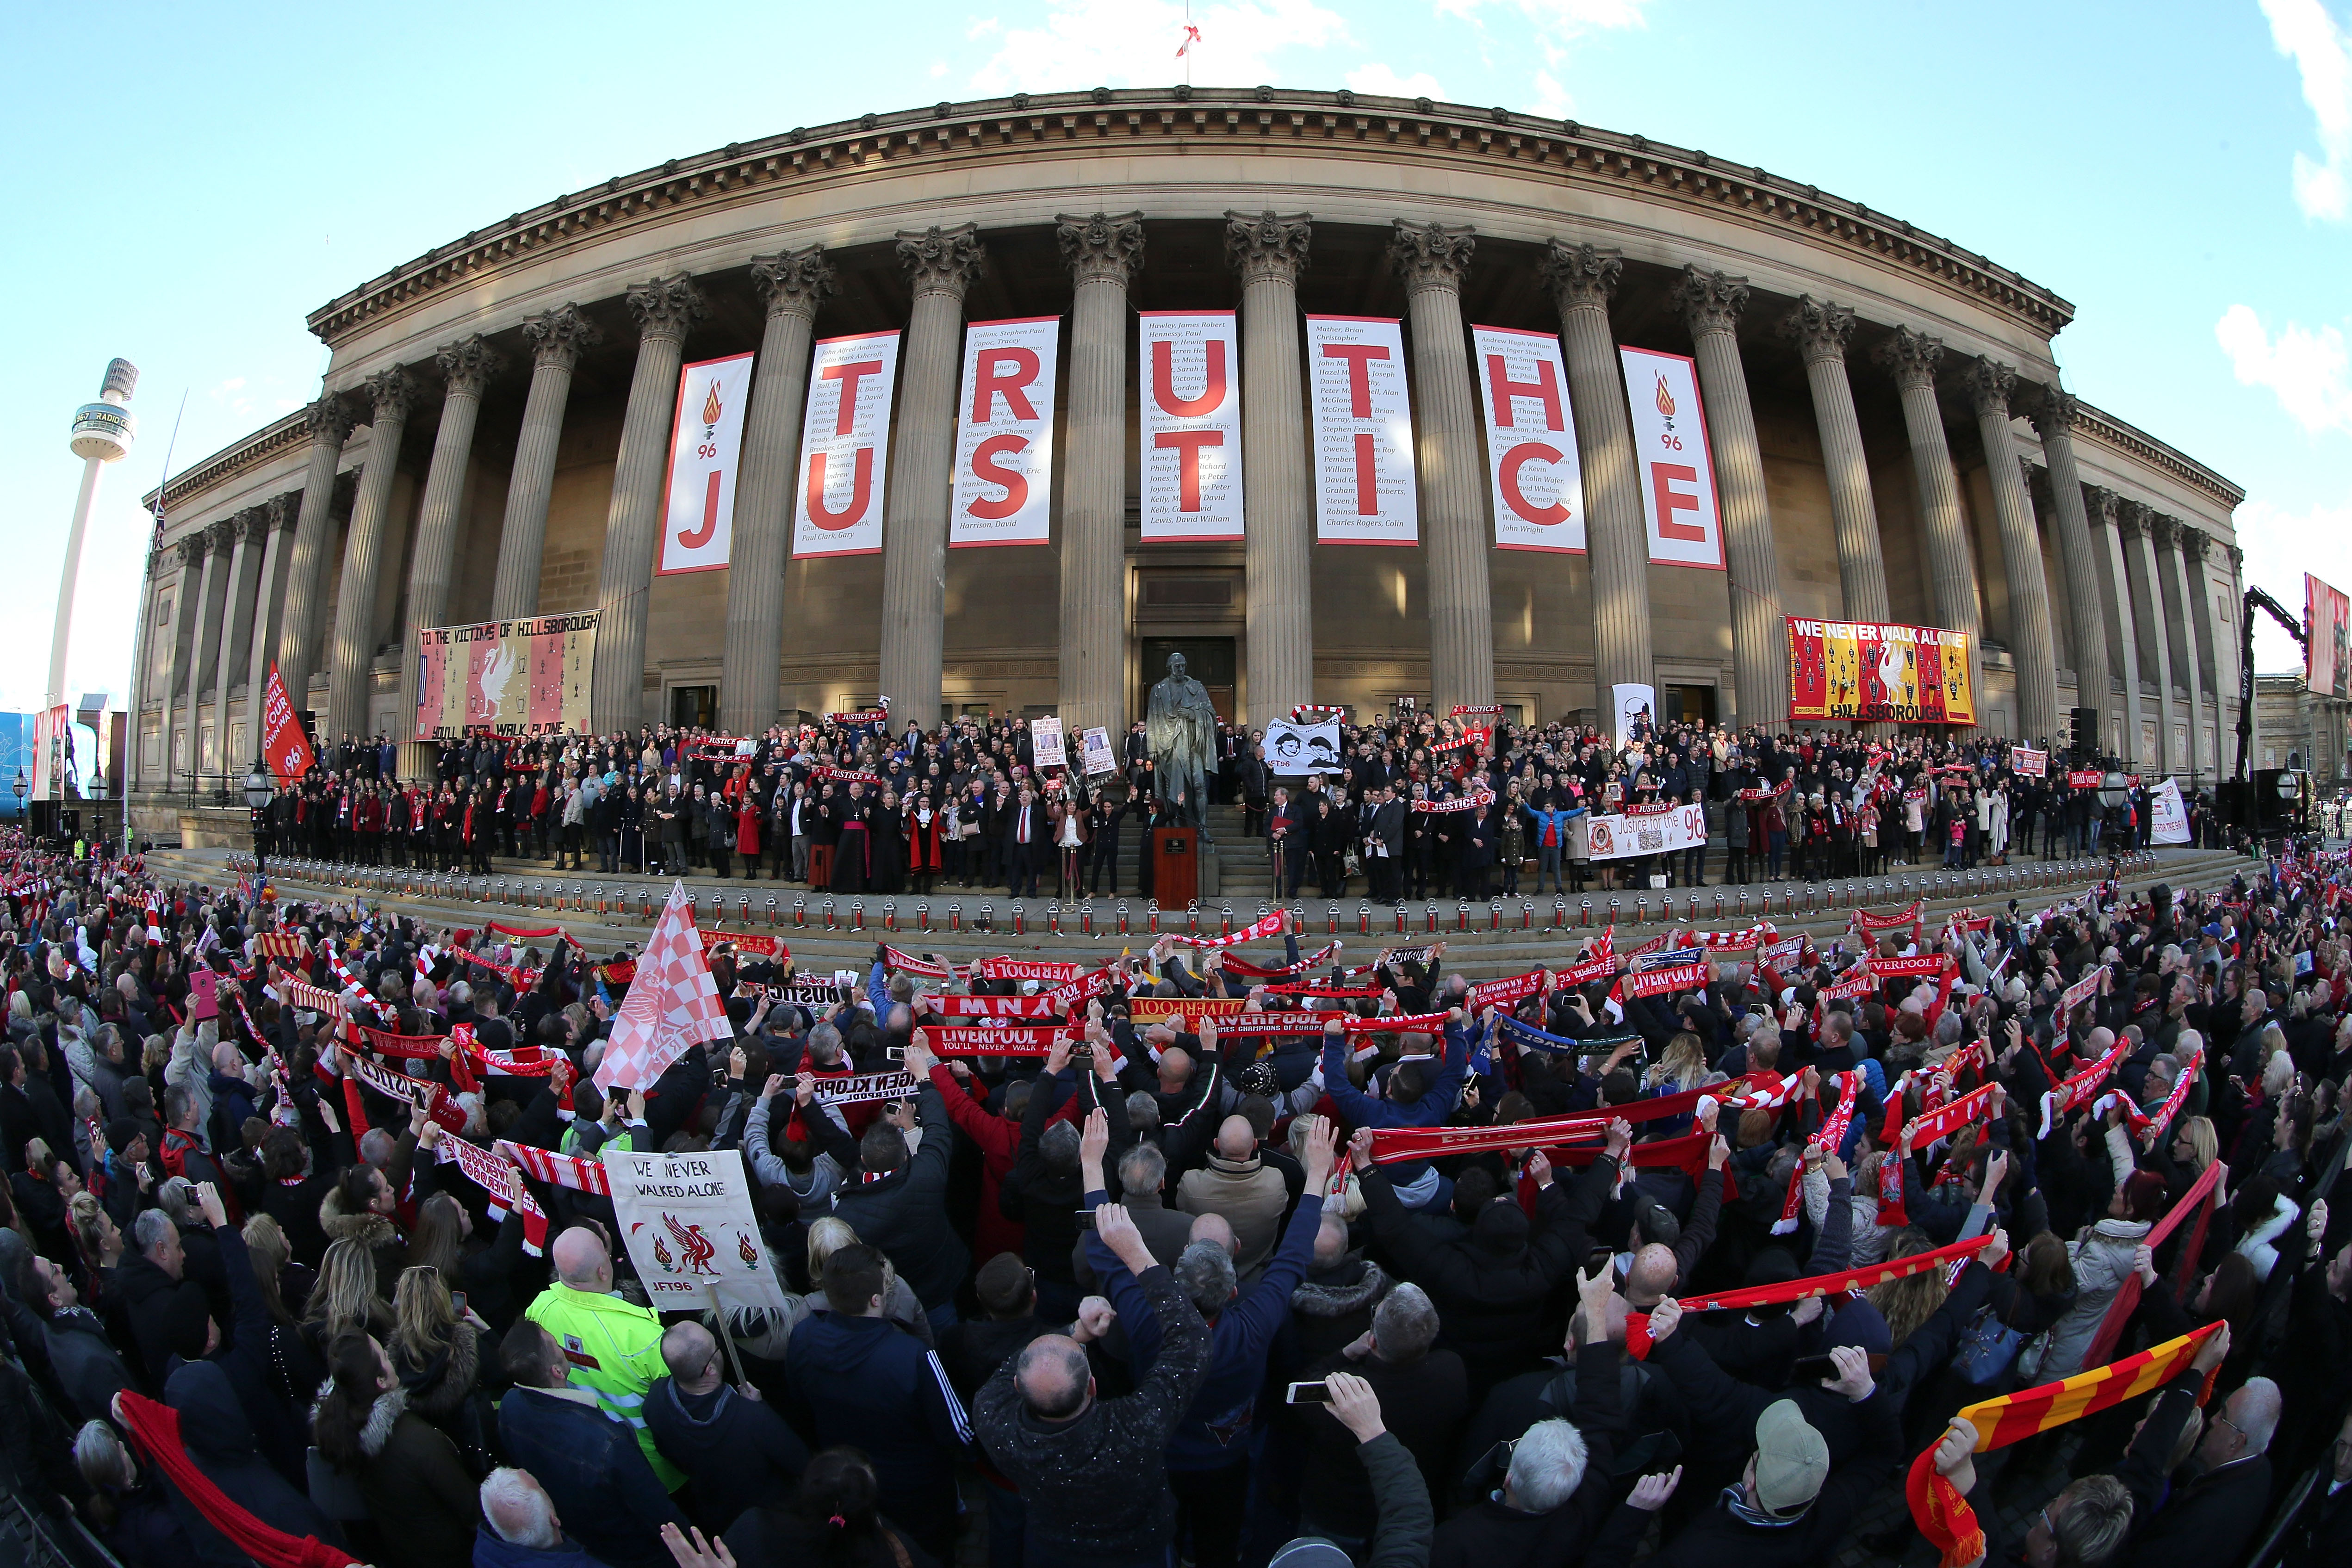 Hillsborough suspects could face criminal charges after files passed to CPS